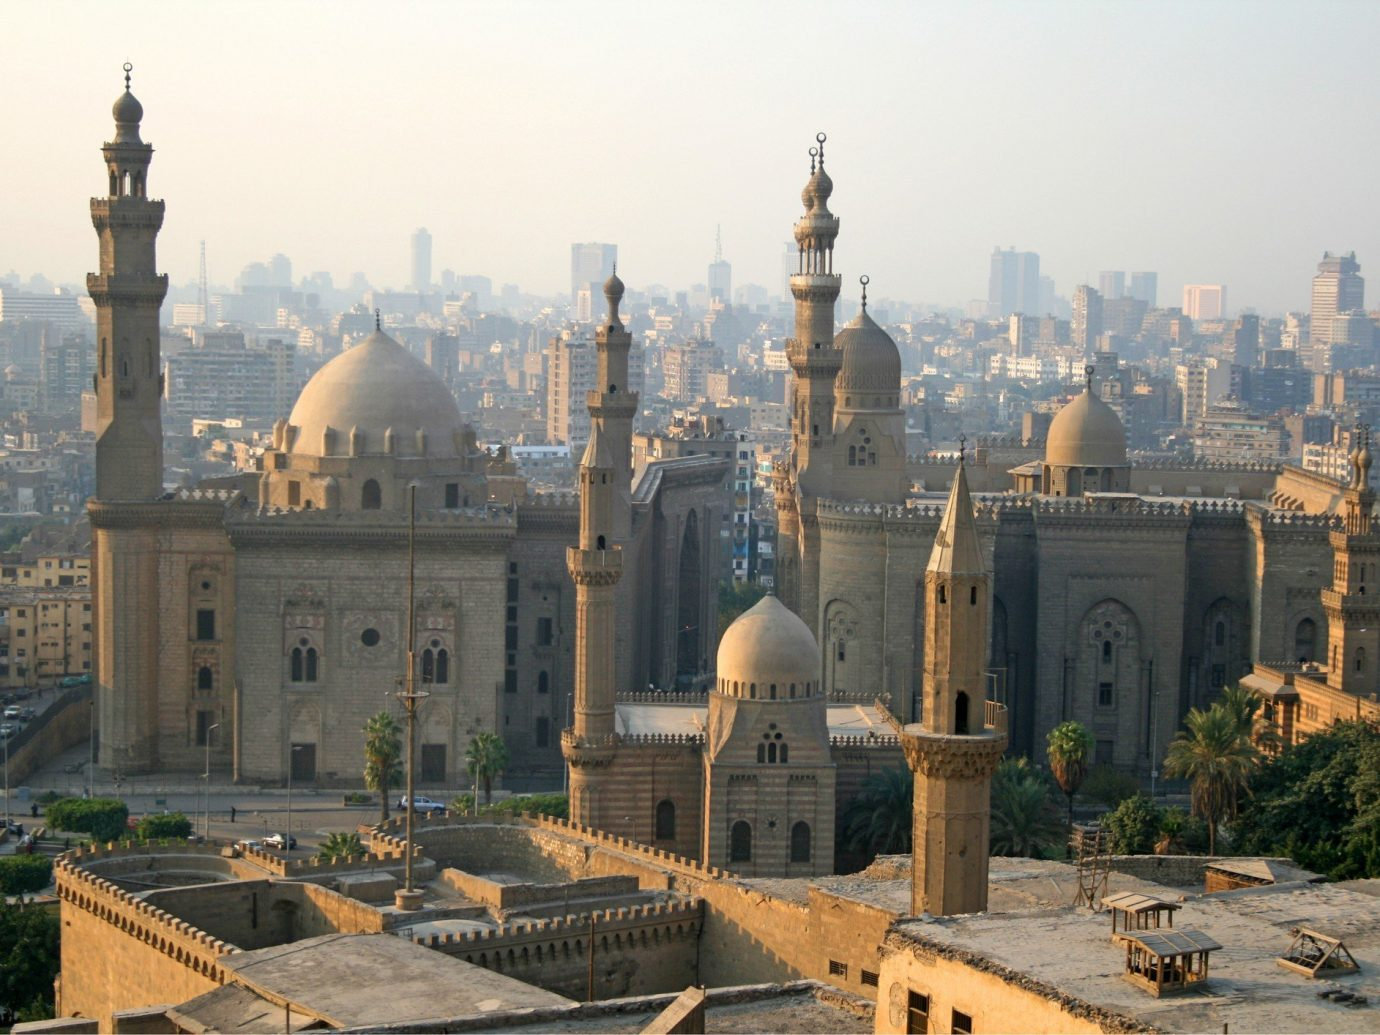 Trip Ideas outdoor sky building landmark City human settlement mosque place of worship cityscape ancient history cathedral skyline basilica